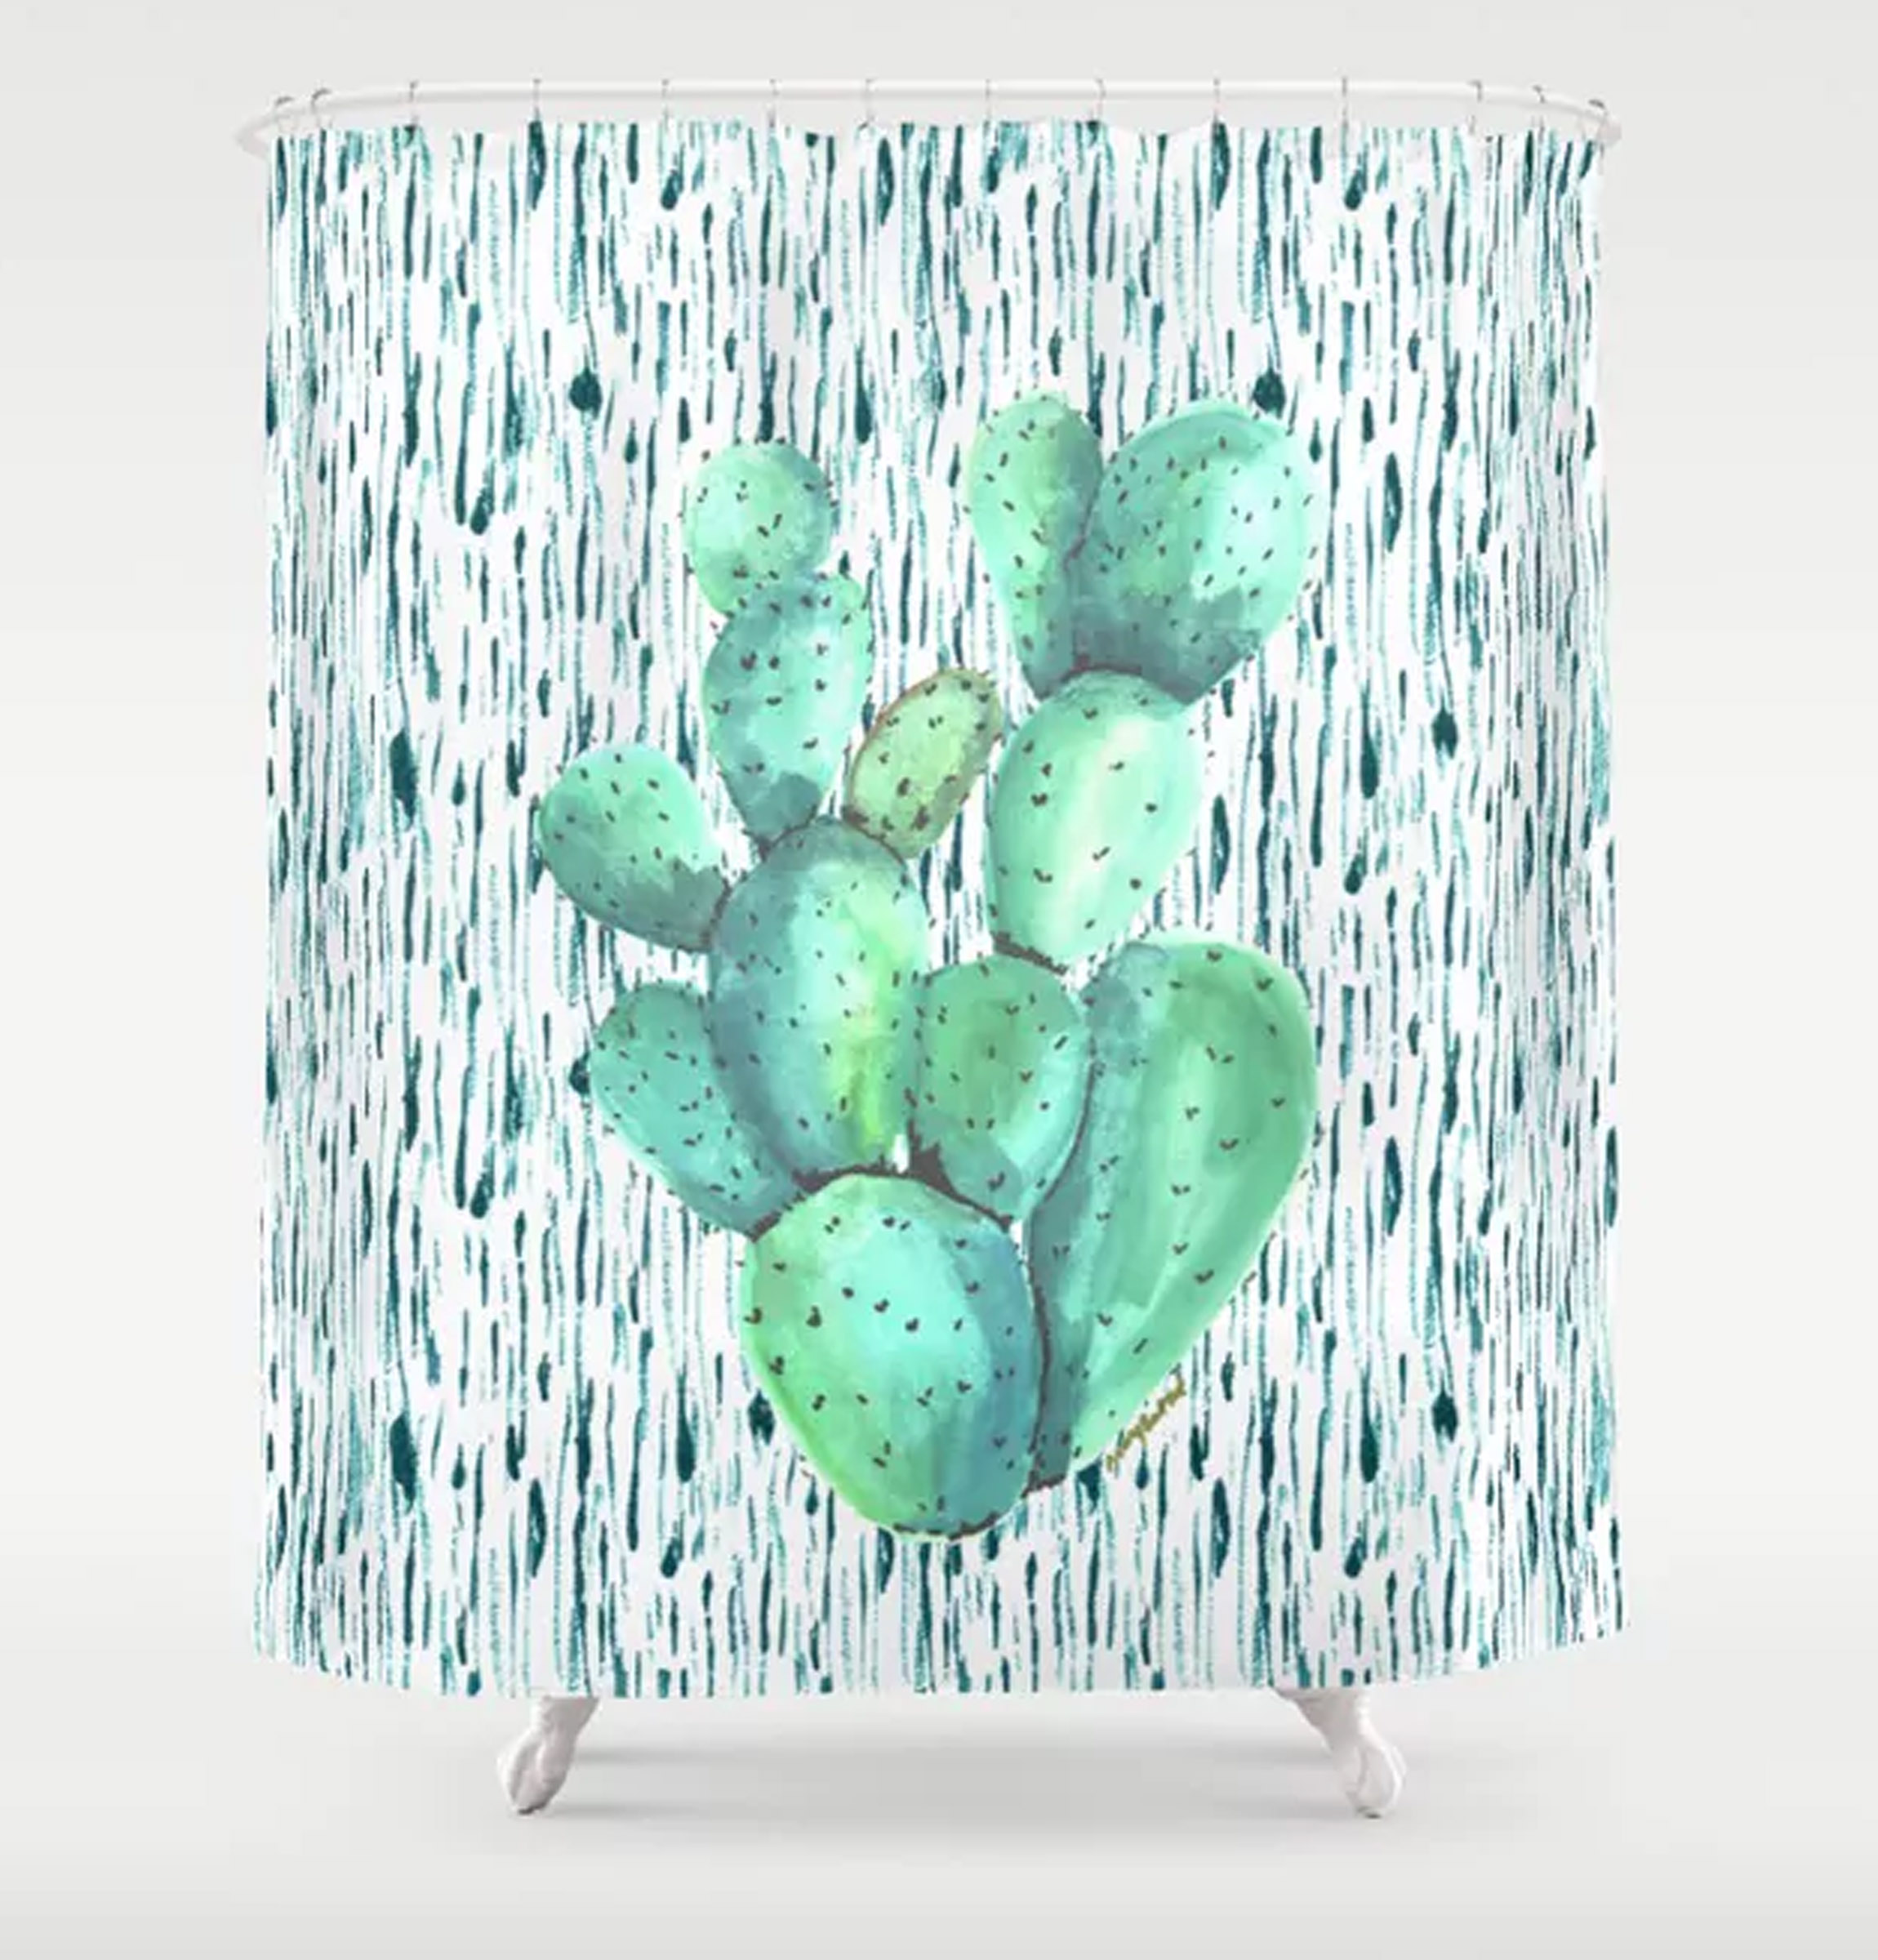 Shower Curtains  Starting at $68   (more options available)